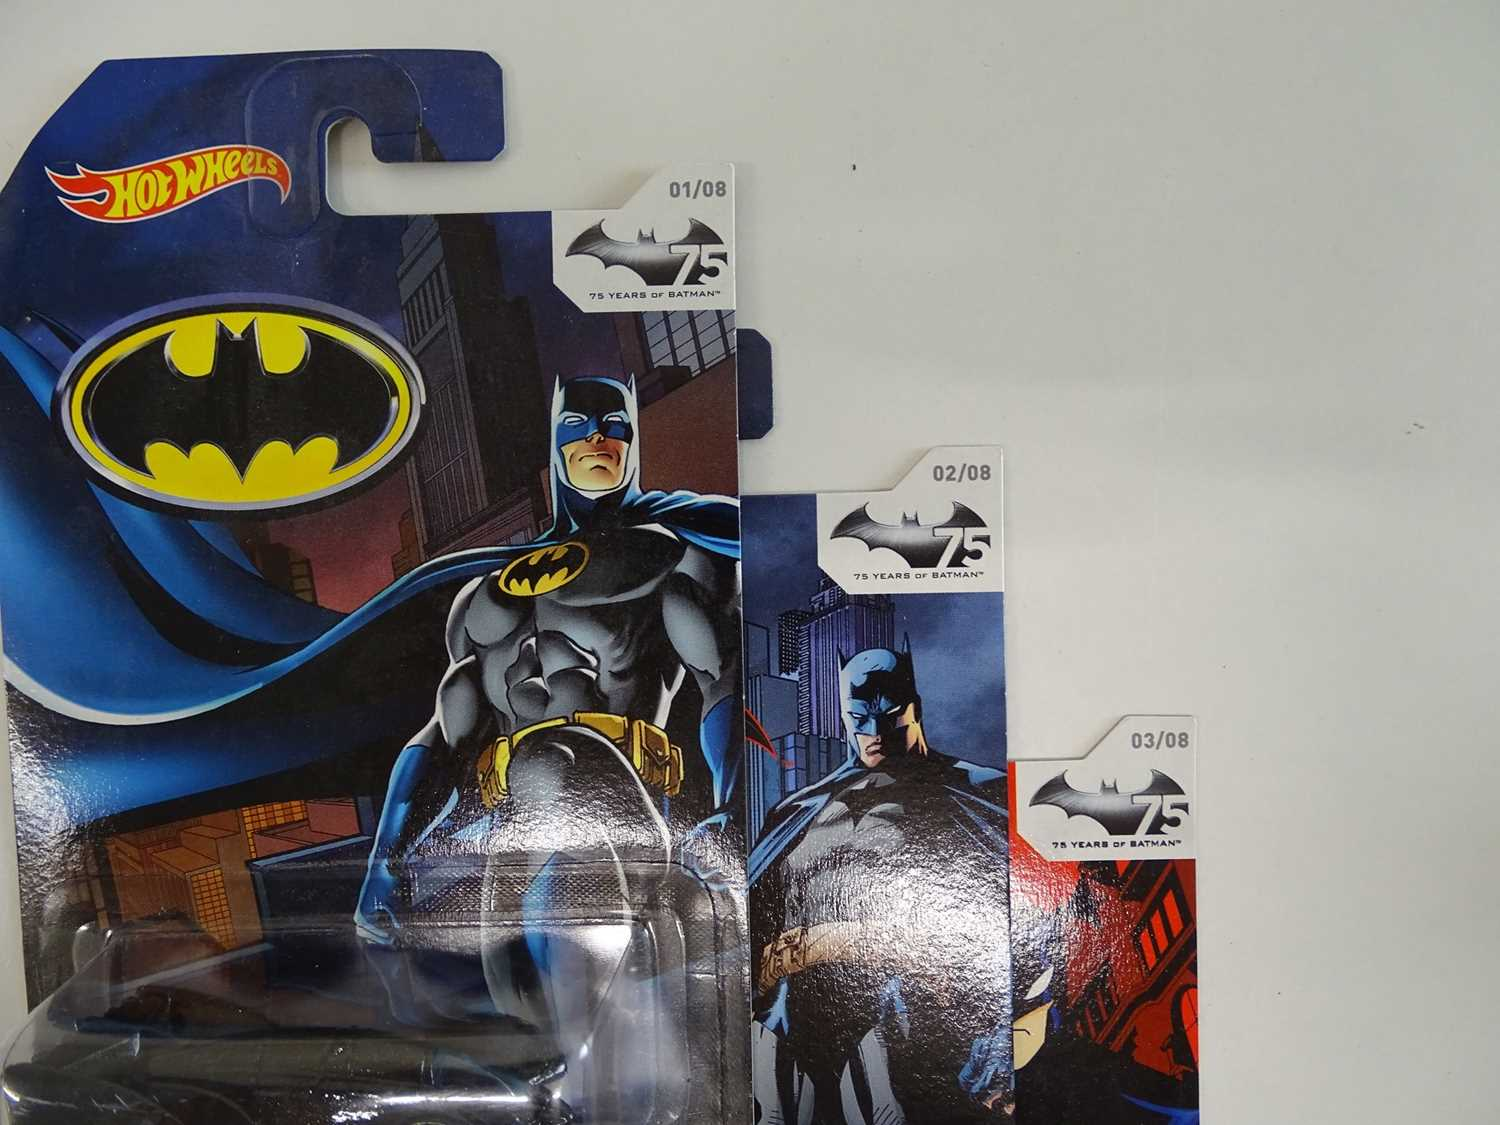 BATMAN LOT (9 in Lot) - Selection of various Batmobiles (8) from Hot Wheels all presented sealed - Image 5 of 7